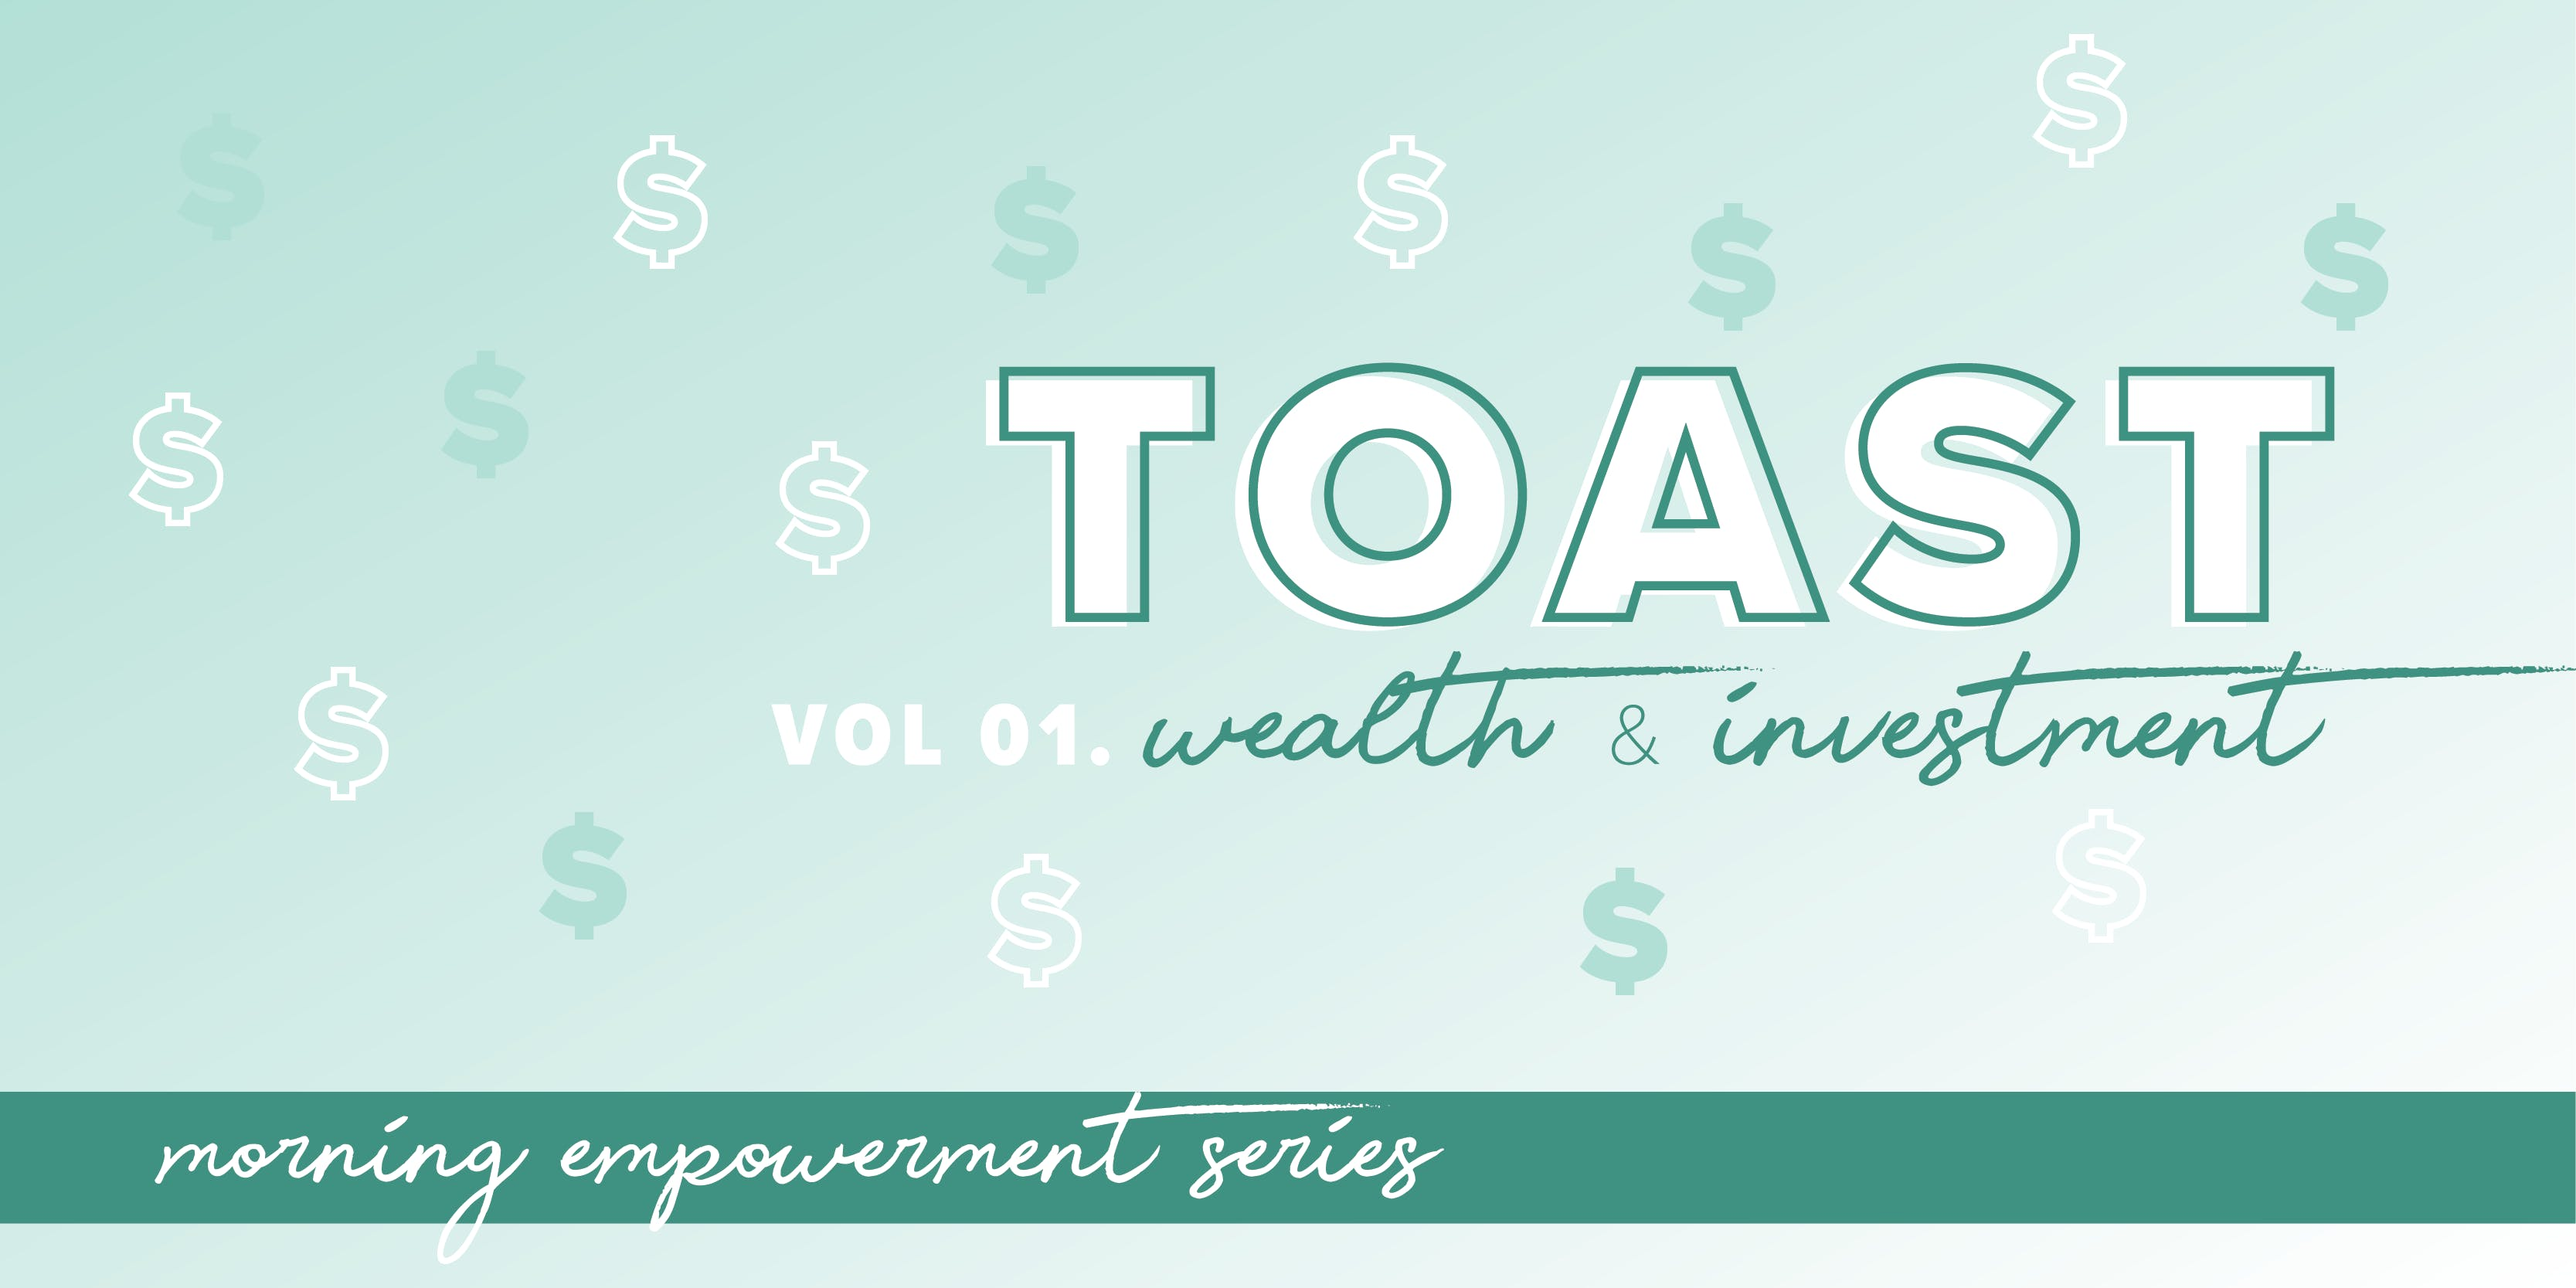 Toast Vol 01 Calgary - Wealth & Investment